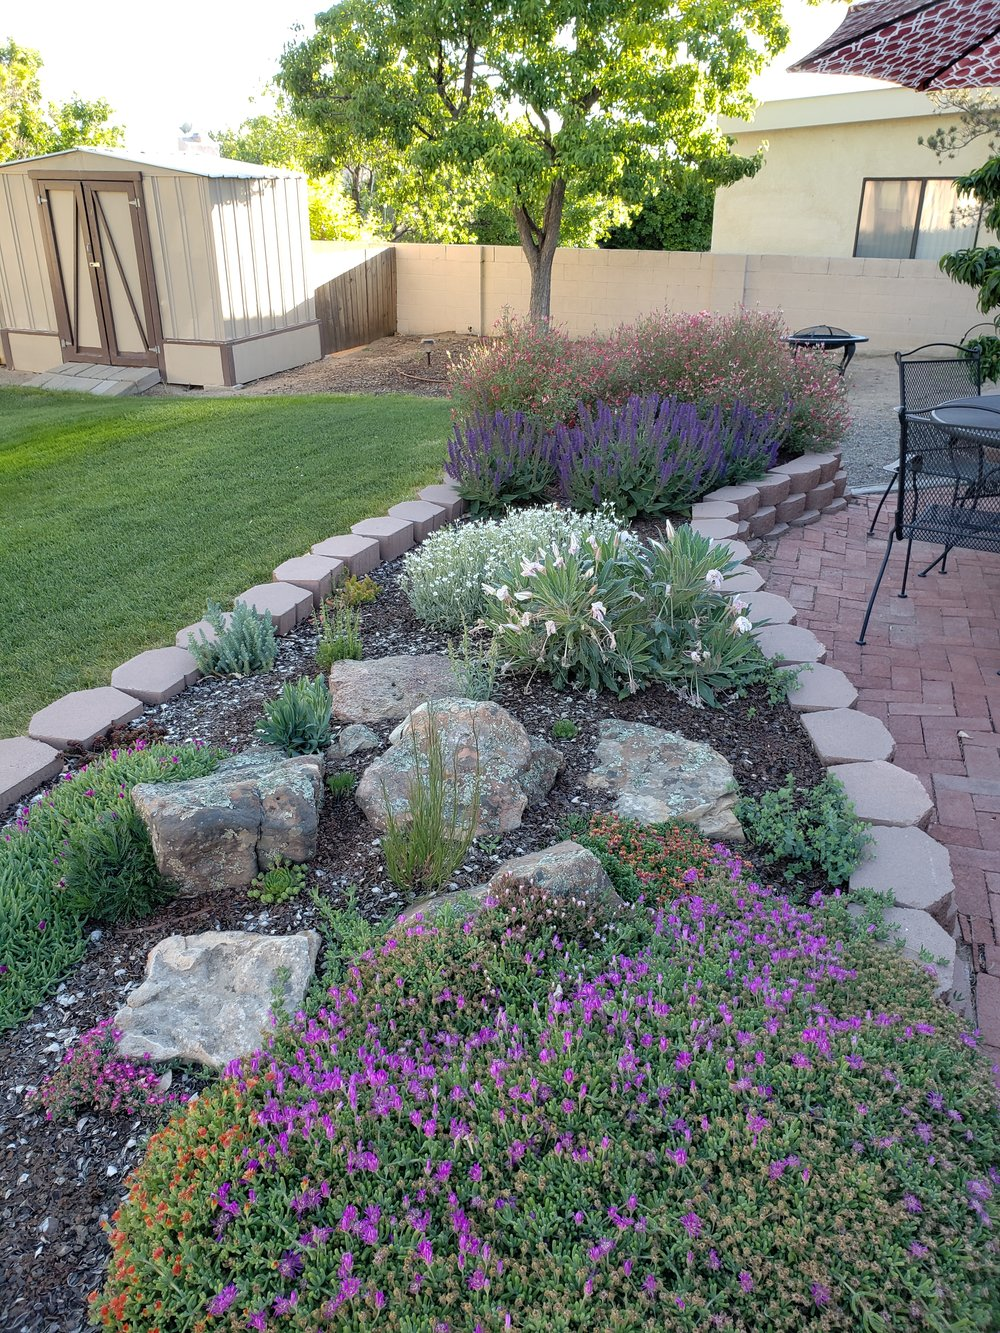 Happy mother's day! This is a picture of my mommy's garden that we designed and built last year. It still has a long way to go, but looks nice already.  #southwesthorticulture #horticulture #landscapes #landscaping #landscapedesign #nativeplants #xeriscaping #xeriscape #waterconservation #gardening #albuquerque #newmexico